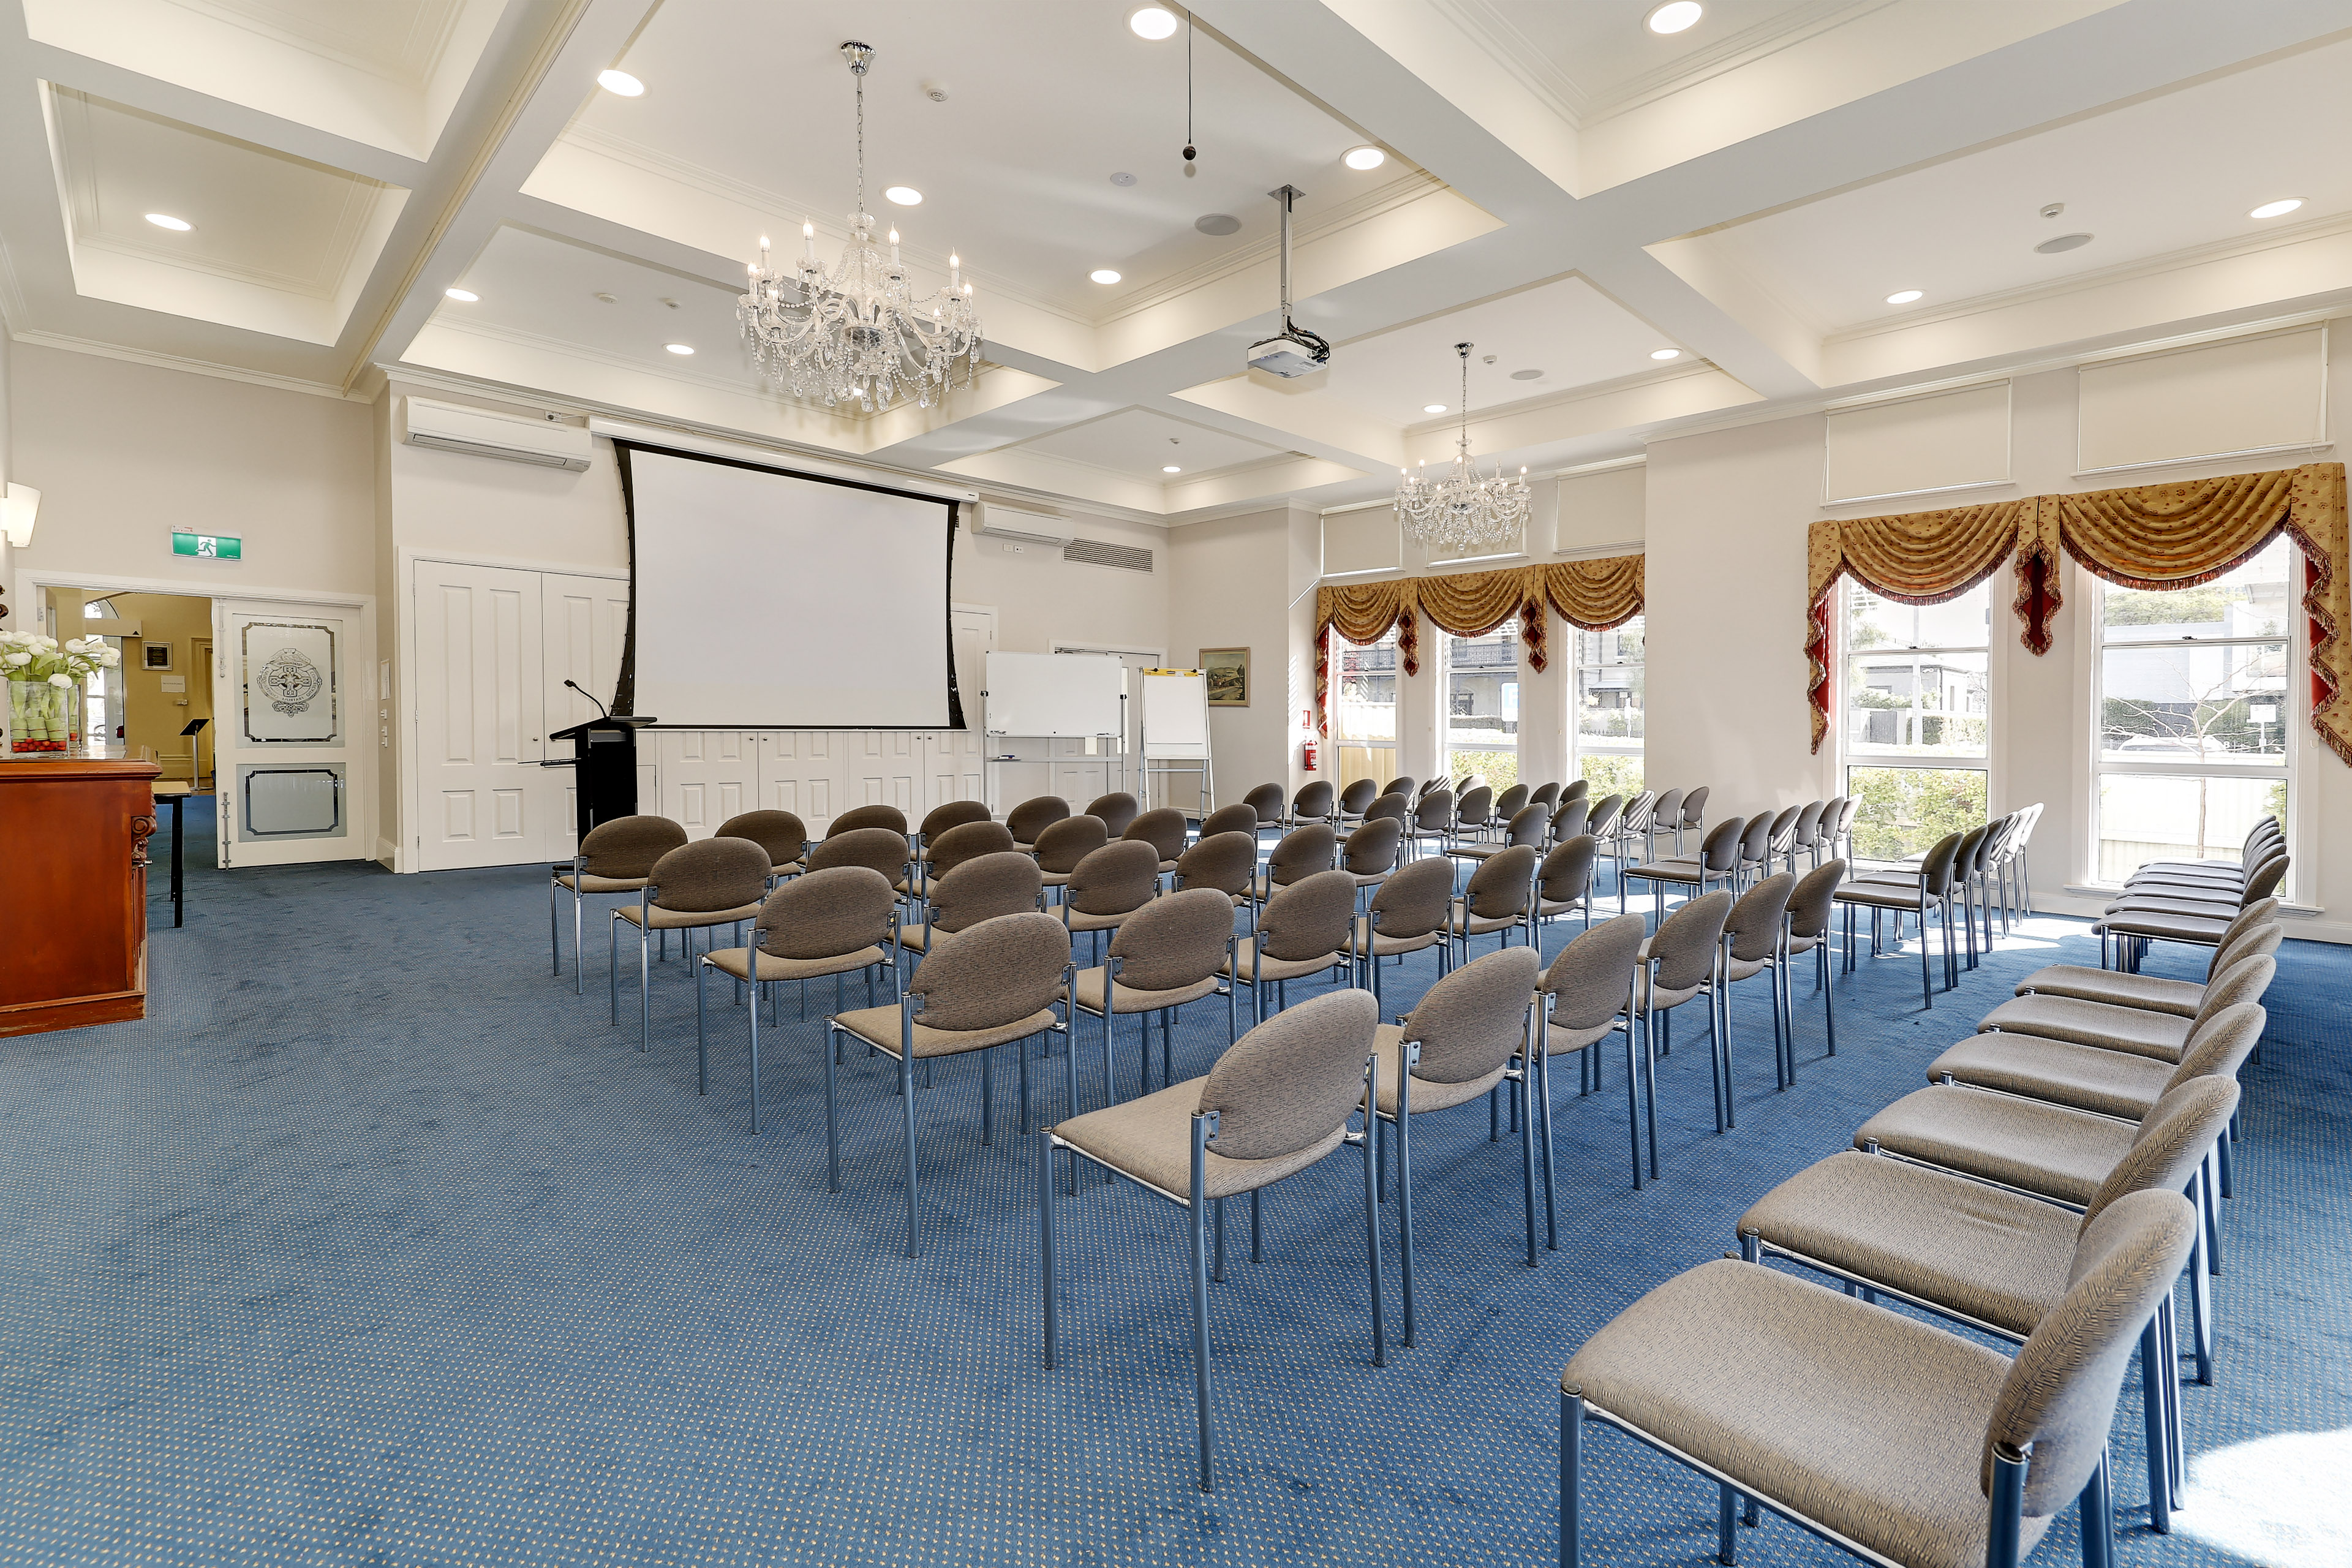 Edmund Rice Function Room Image - h